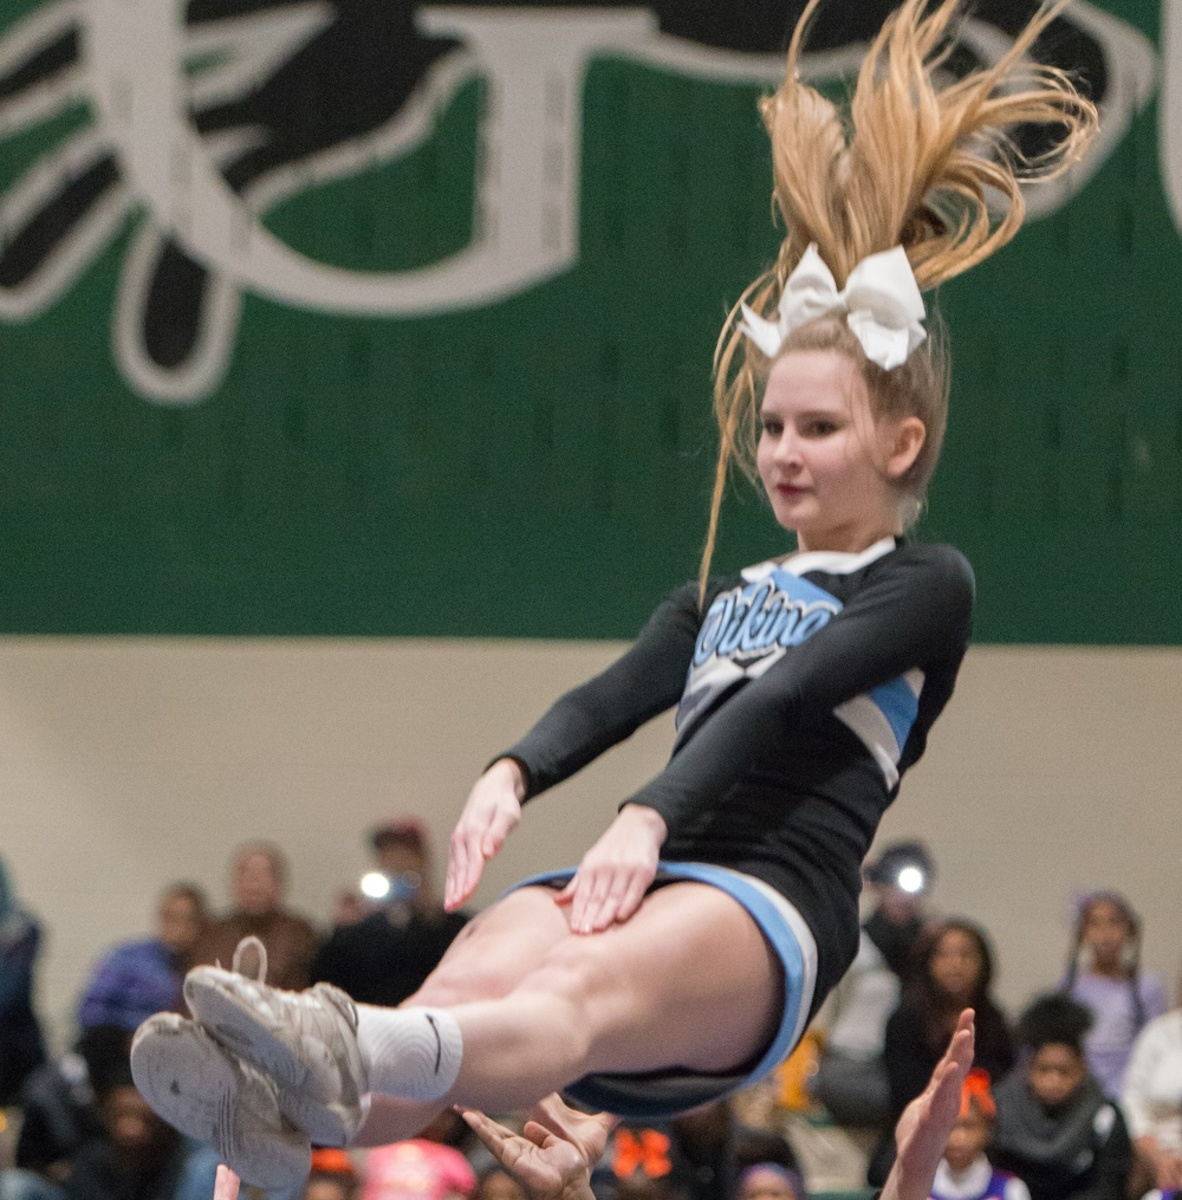 Junior Amanda Erdman soars through the air as the Whitman cheer team caps off their season at the CH Flower's Invitational in Prince George's county. Photo by Jefferson Luo.